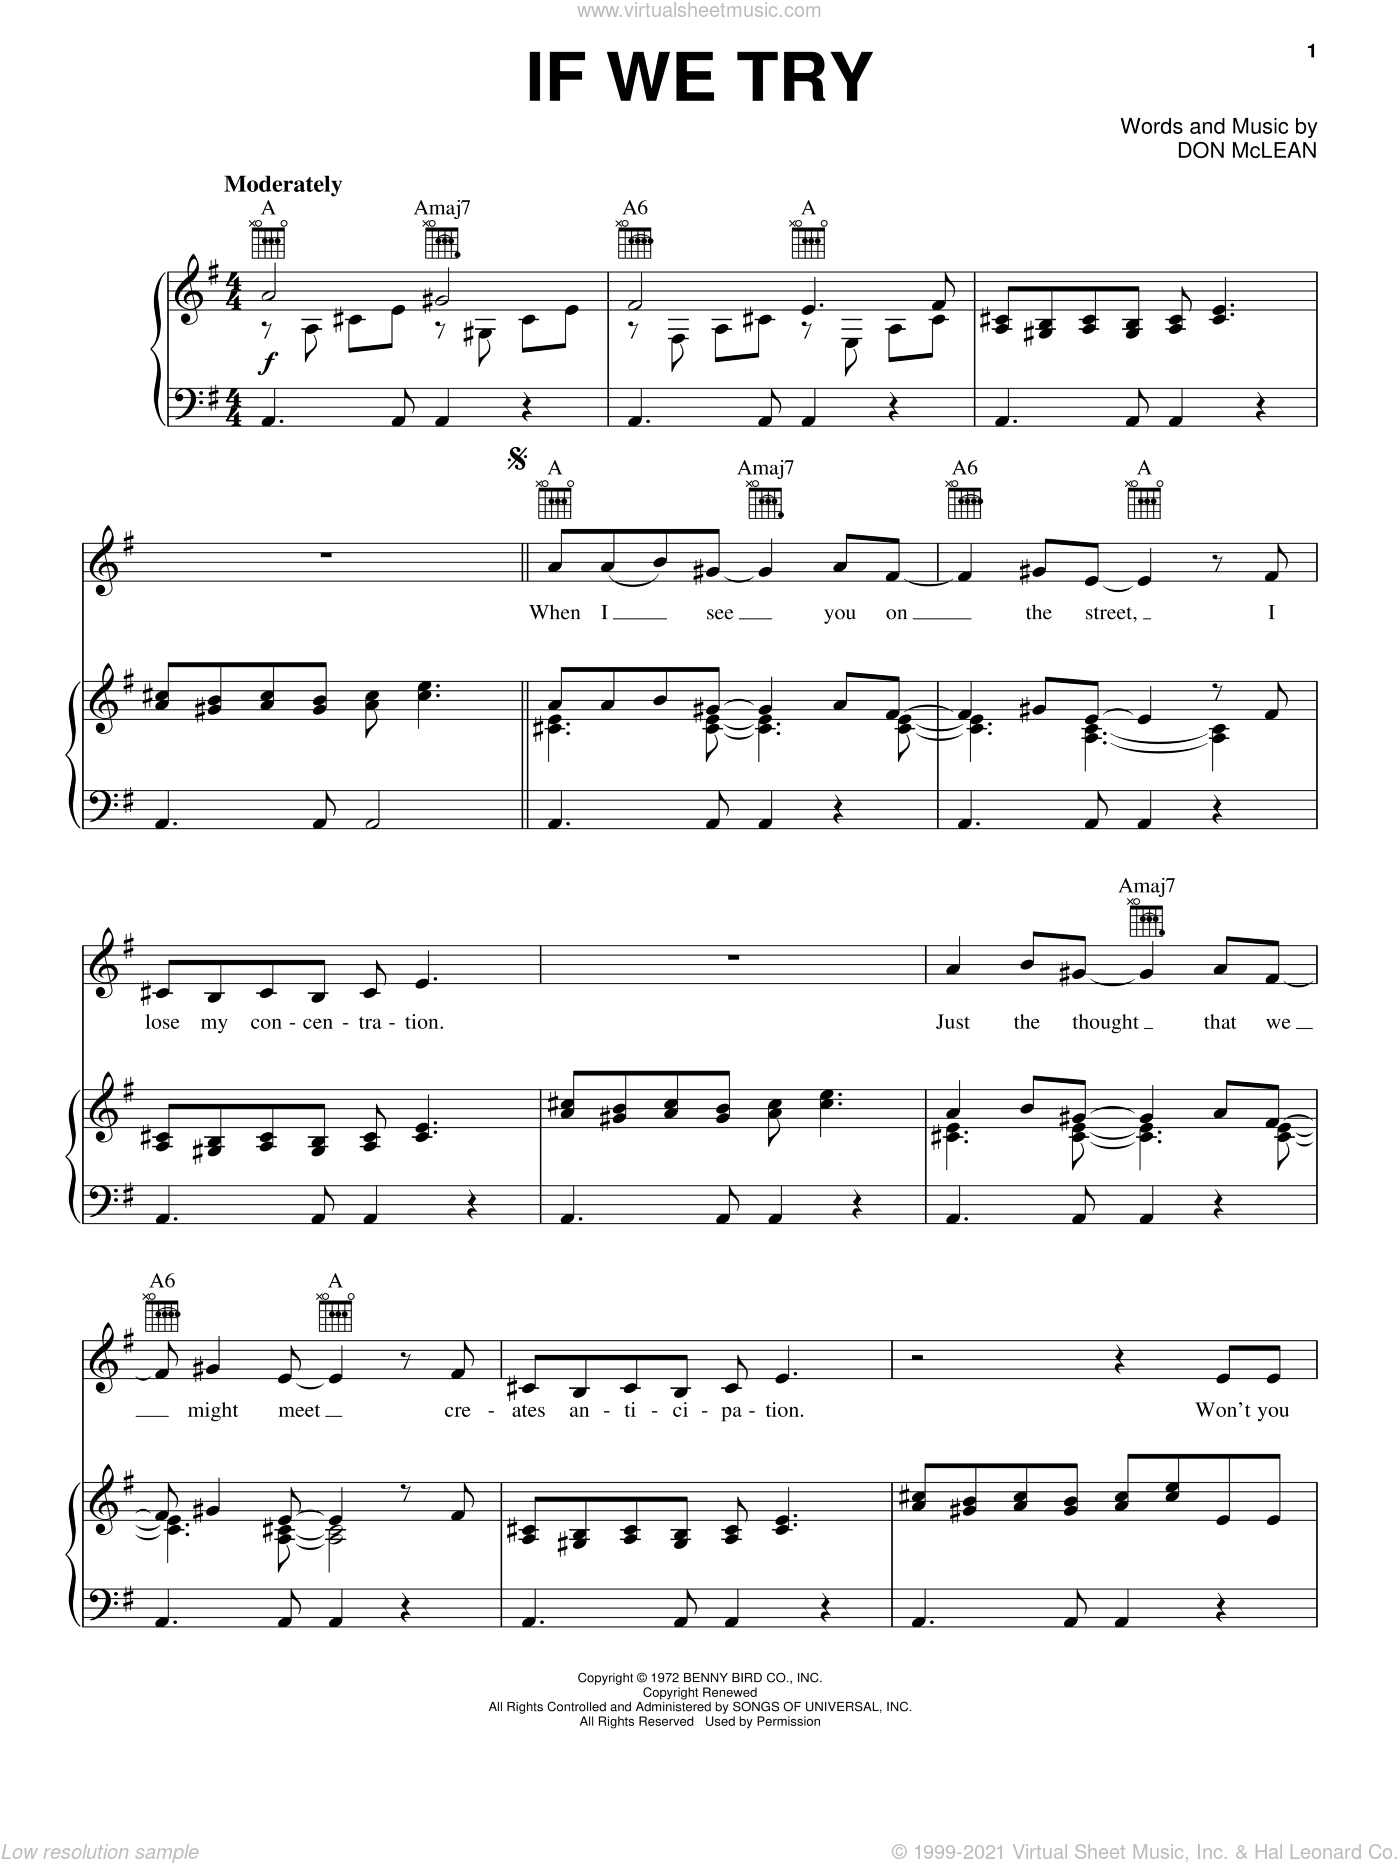 If We Try sheet music for voice, piano or guitar by Don McLean, intermediate voice, piano or guitar. Score Image Preview.